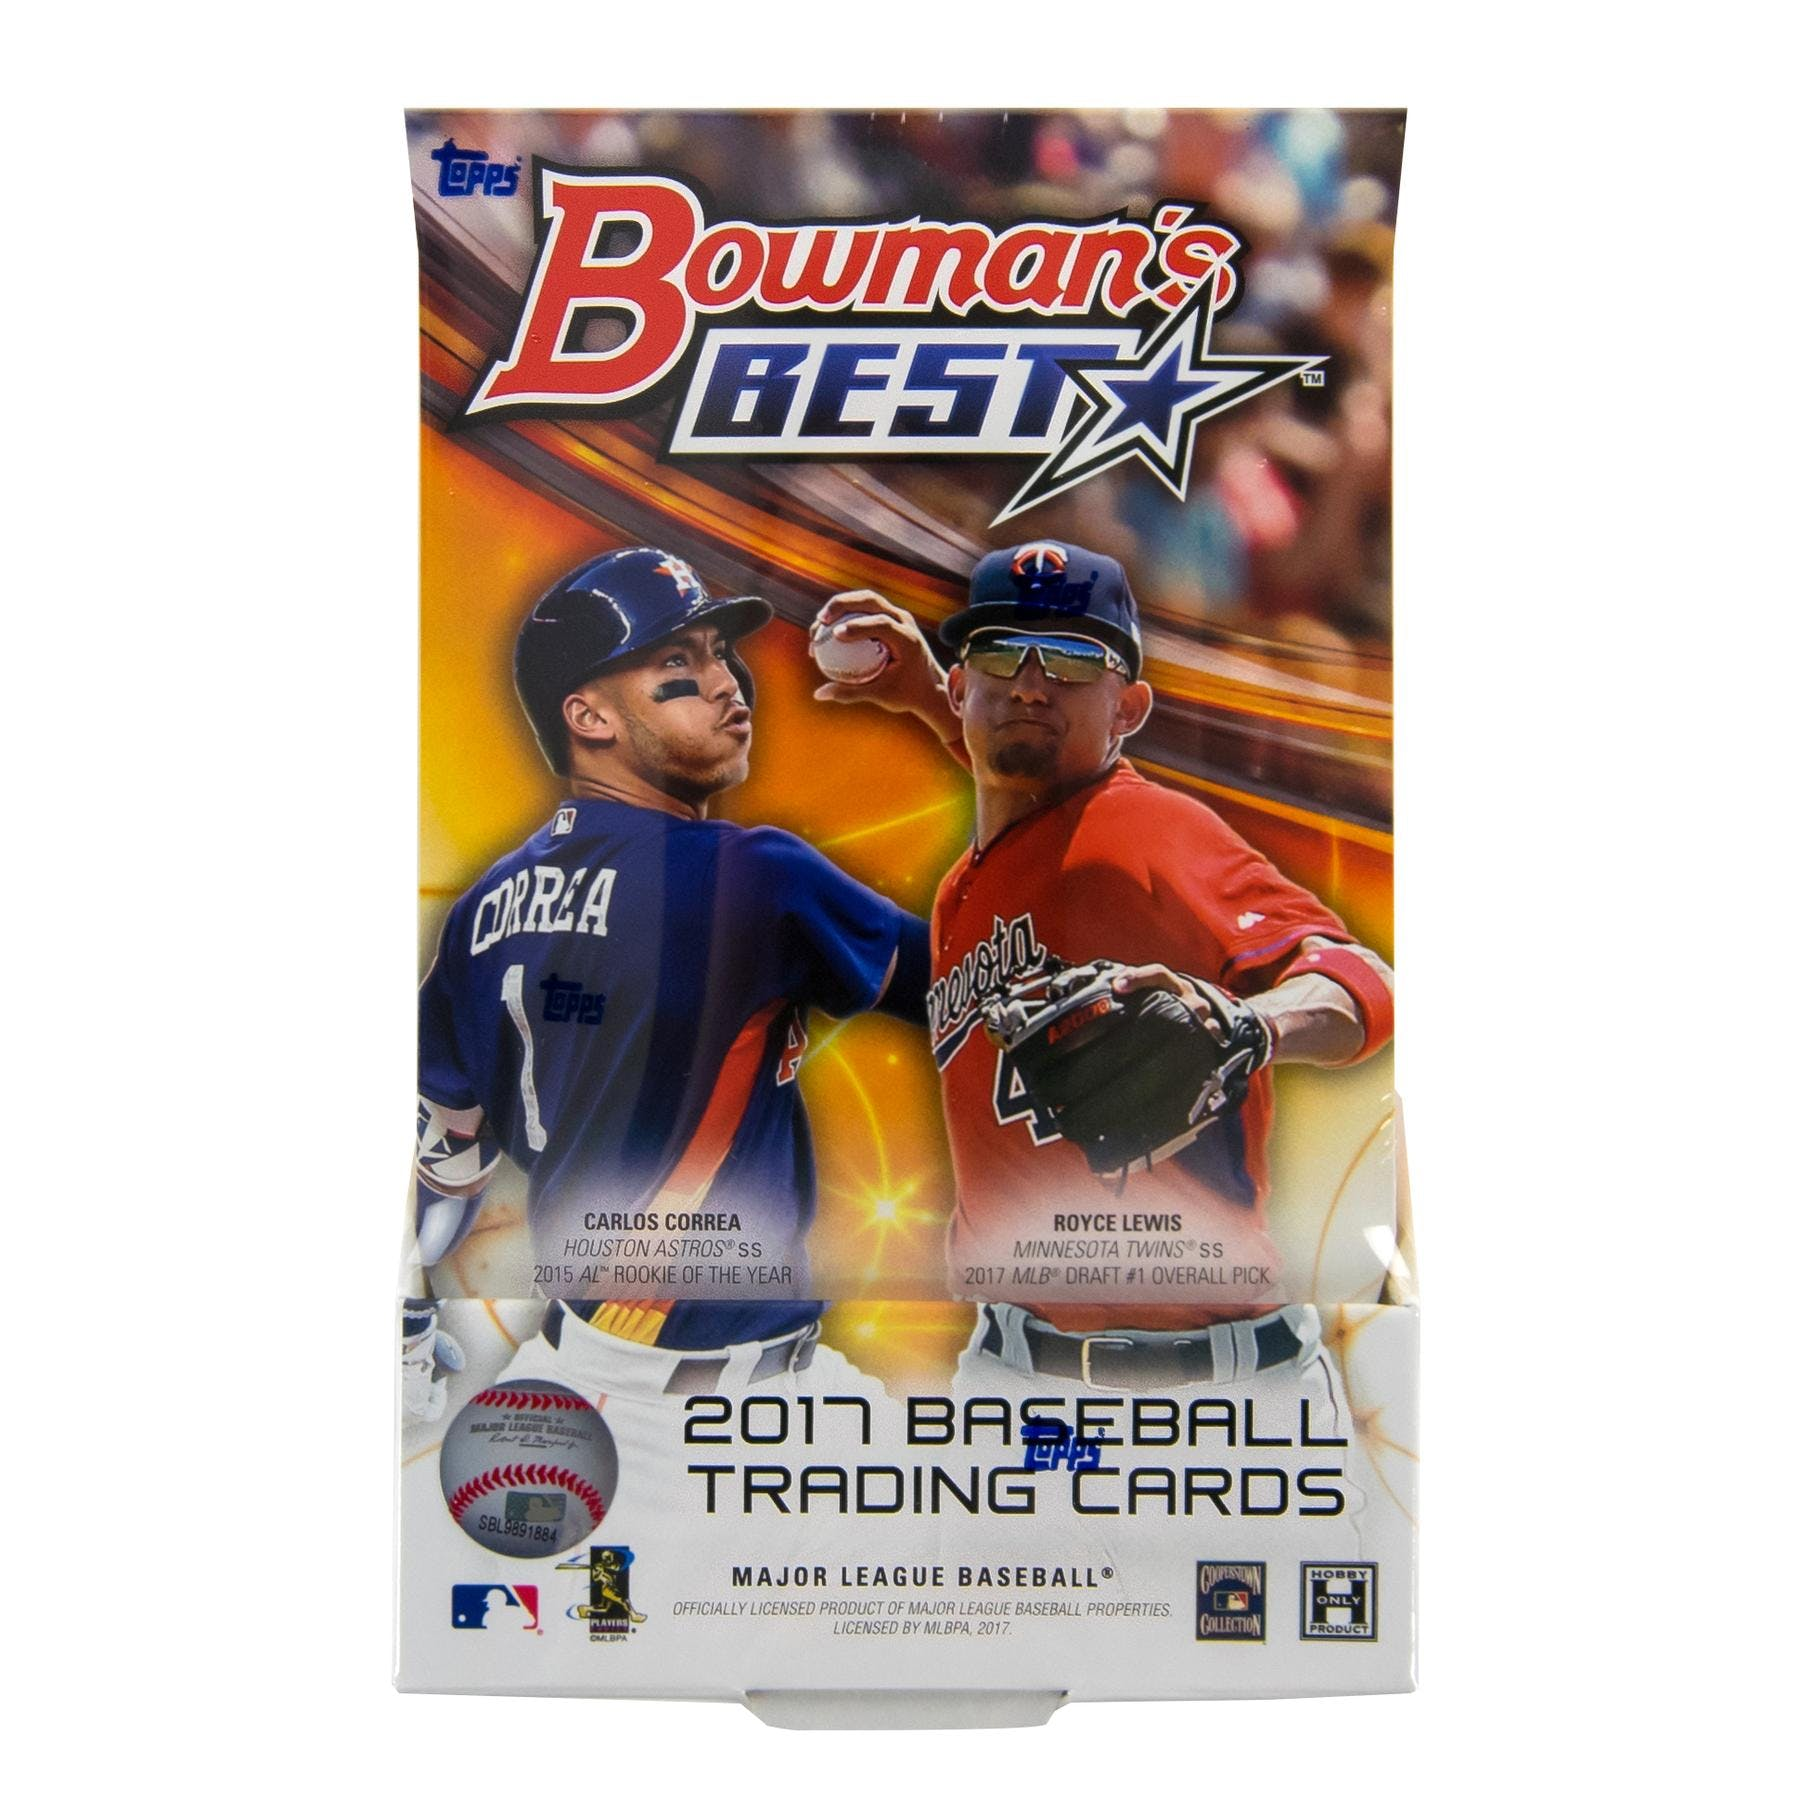 2020 Bowmans Best 2017 Bowman's Best Baseball Hobby Box | DA Card World